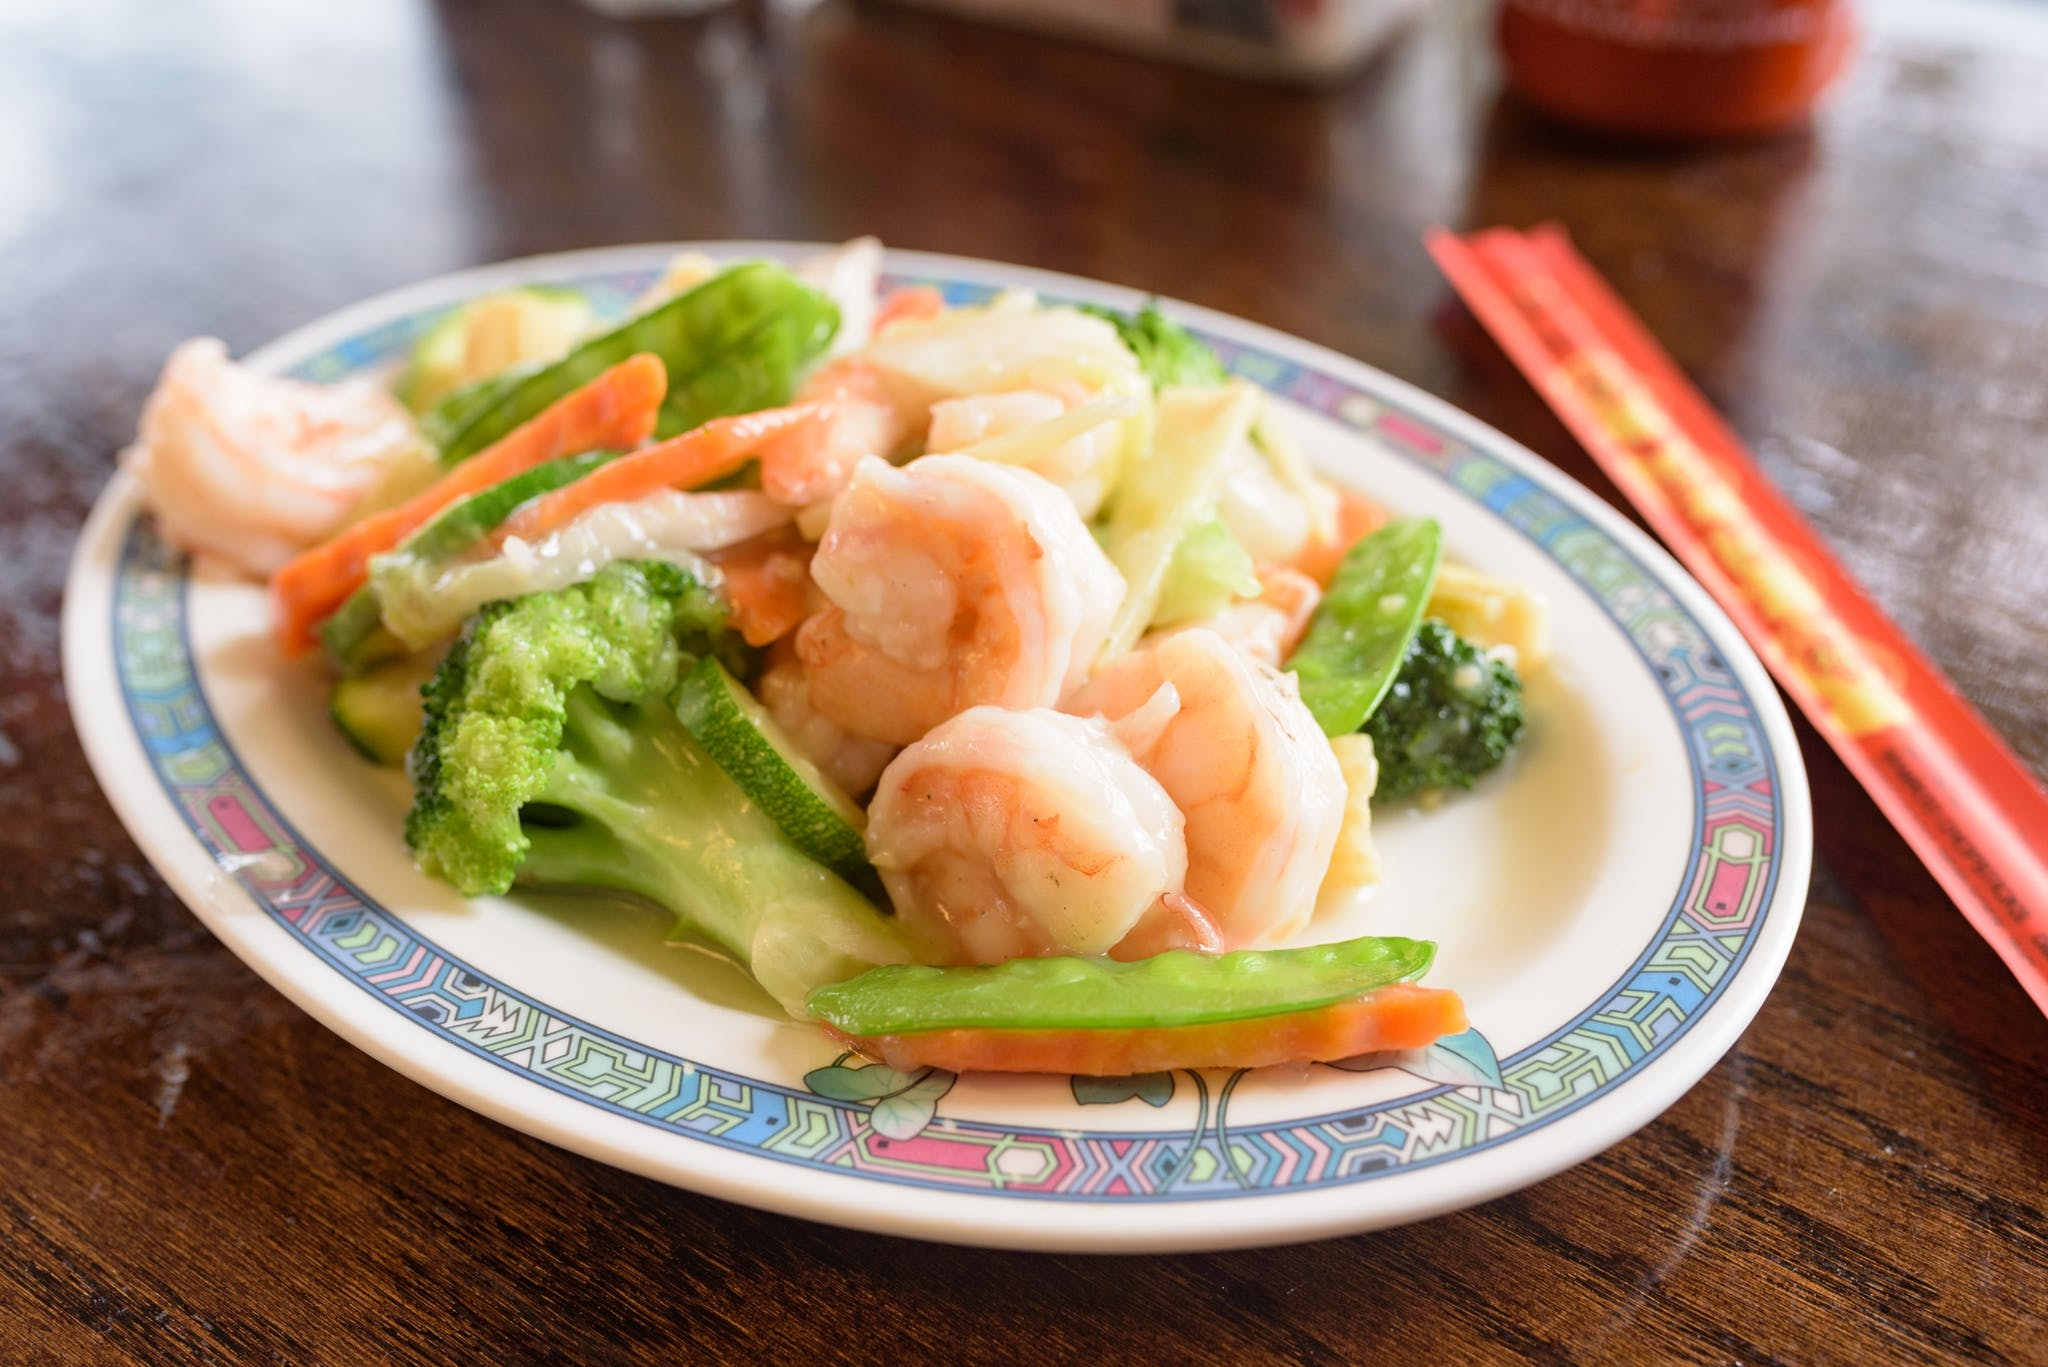 C-22 Shrimp with Mixed Vegetables from Lucky Kitchen - North Campus in Ann Arbor, MI